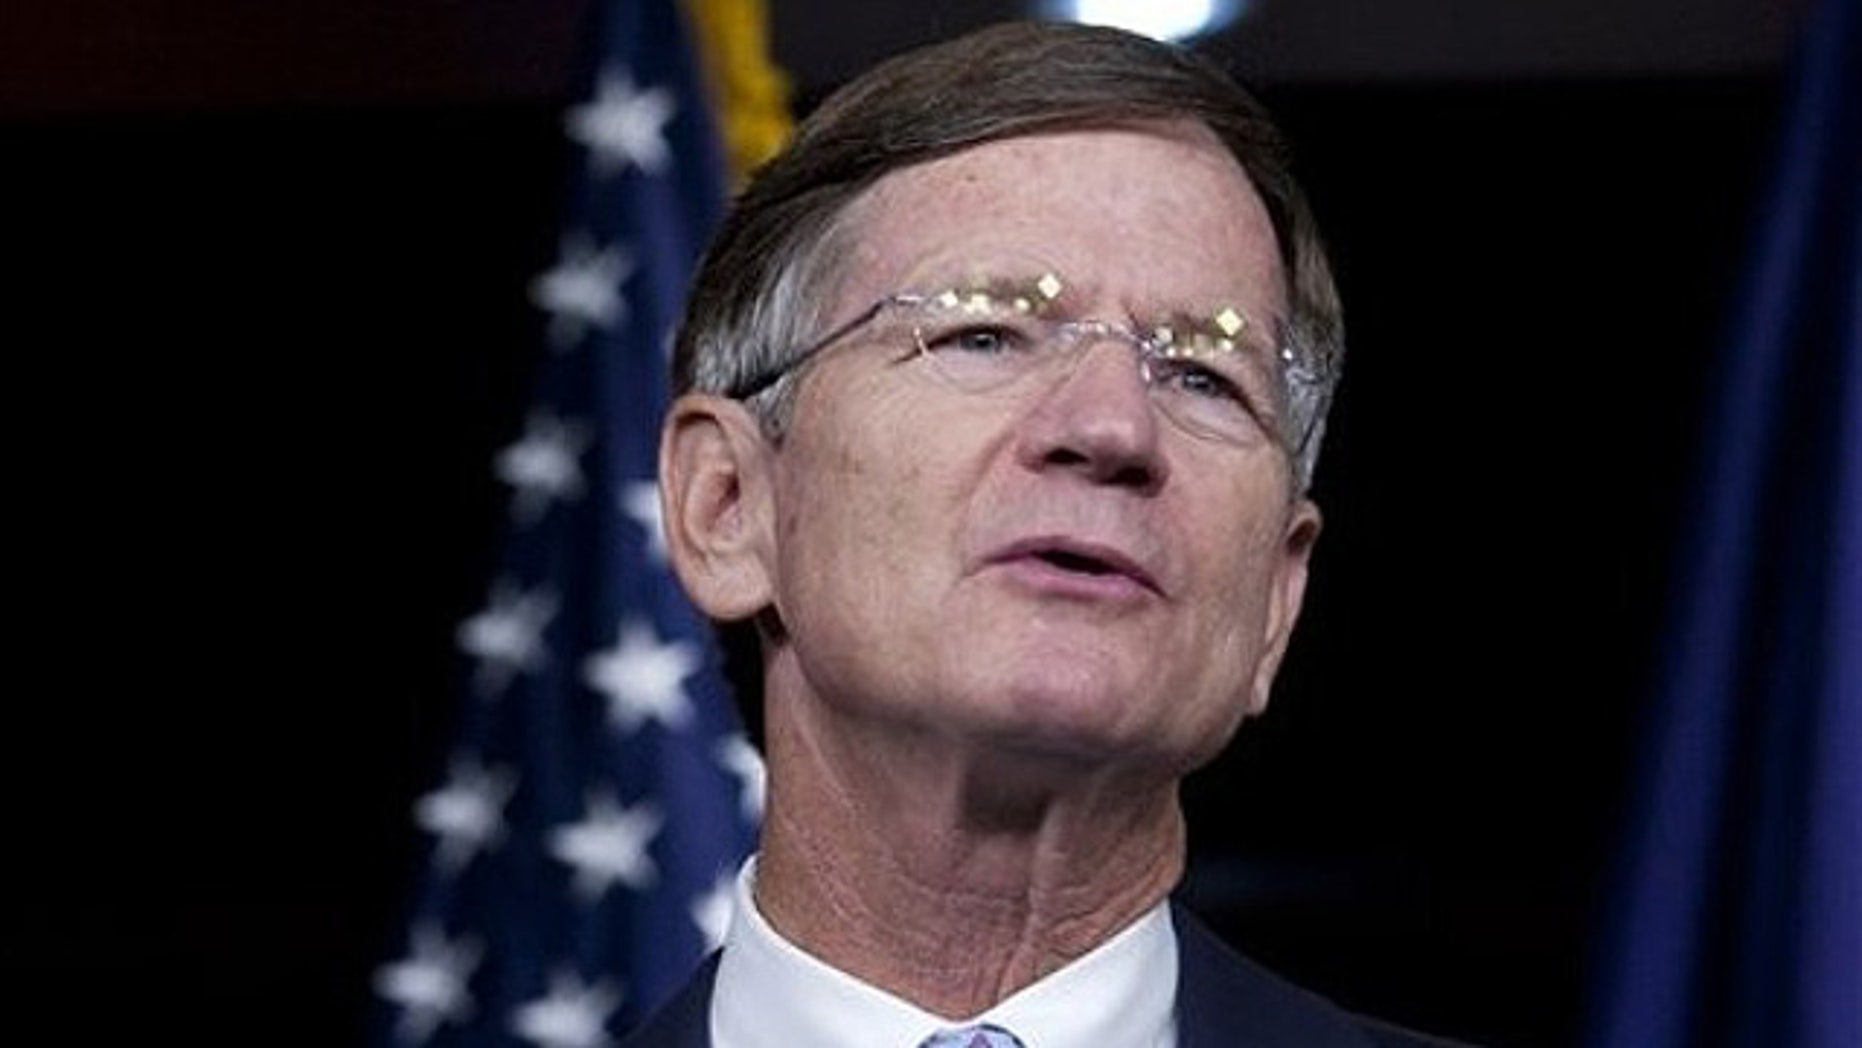 Aug. 10: Rep. Lamar Smith, R-Tex. , speaks during a news conference on Capitol Hill in Washington, announcing a resolution condemning the Proposition 8 decision in California on same-sex marriage. On Wednesday, Smith called on the Obama administration to secure the U.S.-Mexico border following the murder of a U.S. Border Patrol agent.  (AP)